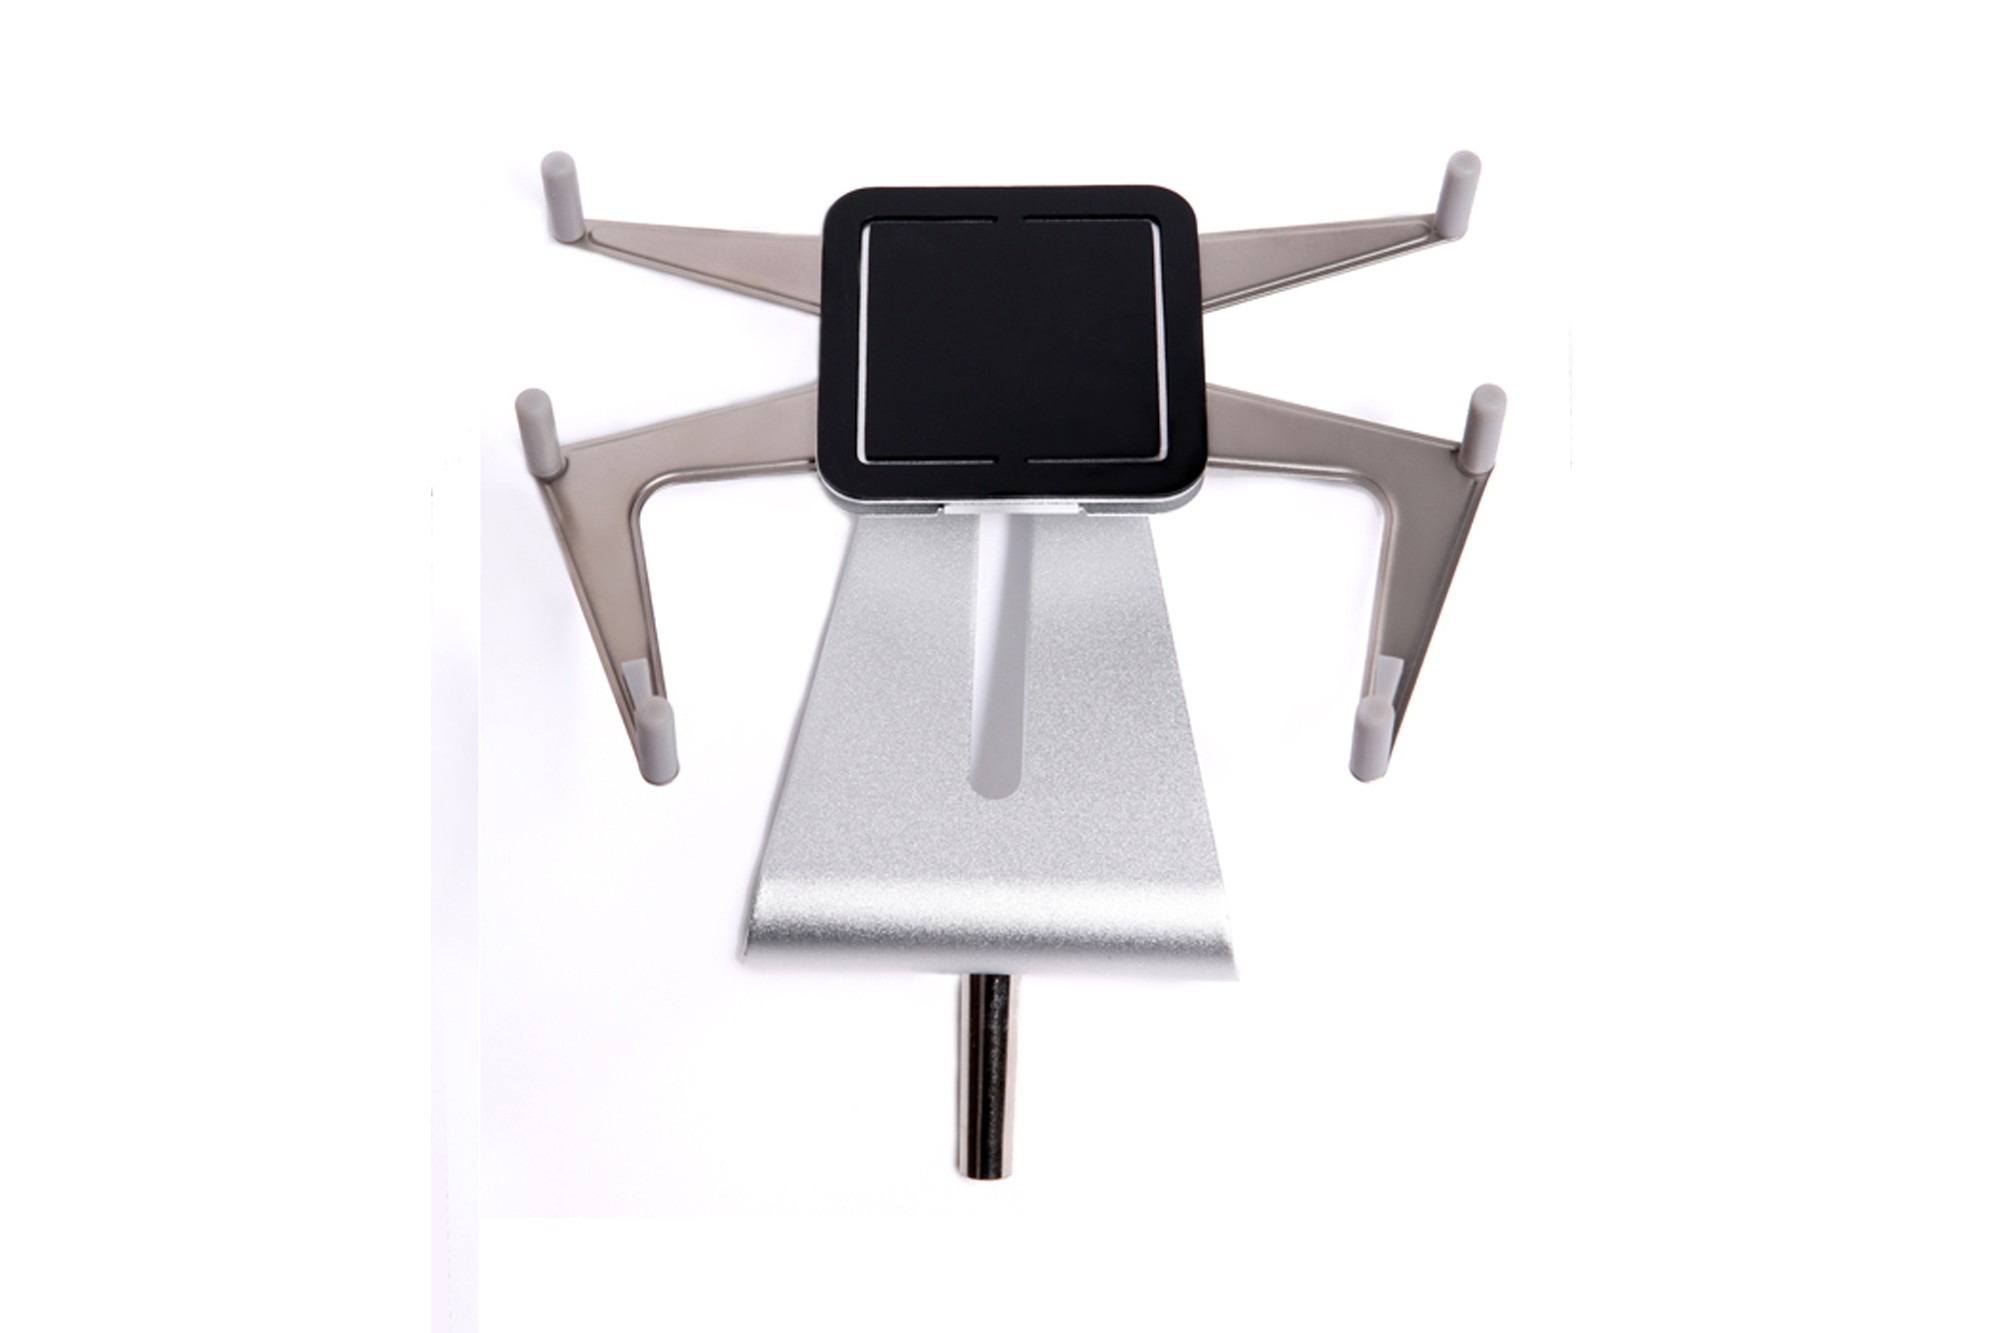 Tablet Holder w/ Silver Stand for spring loaded grommet